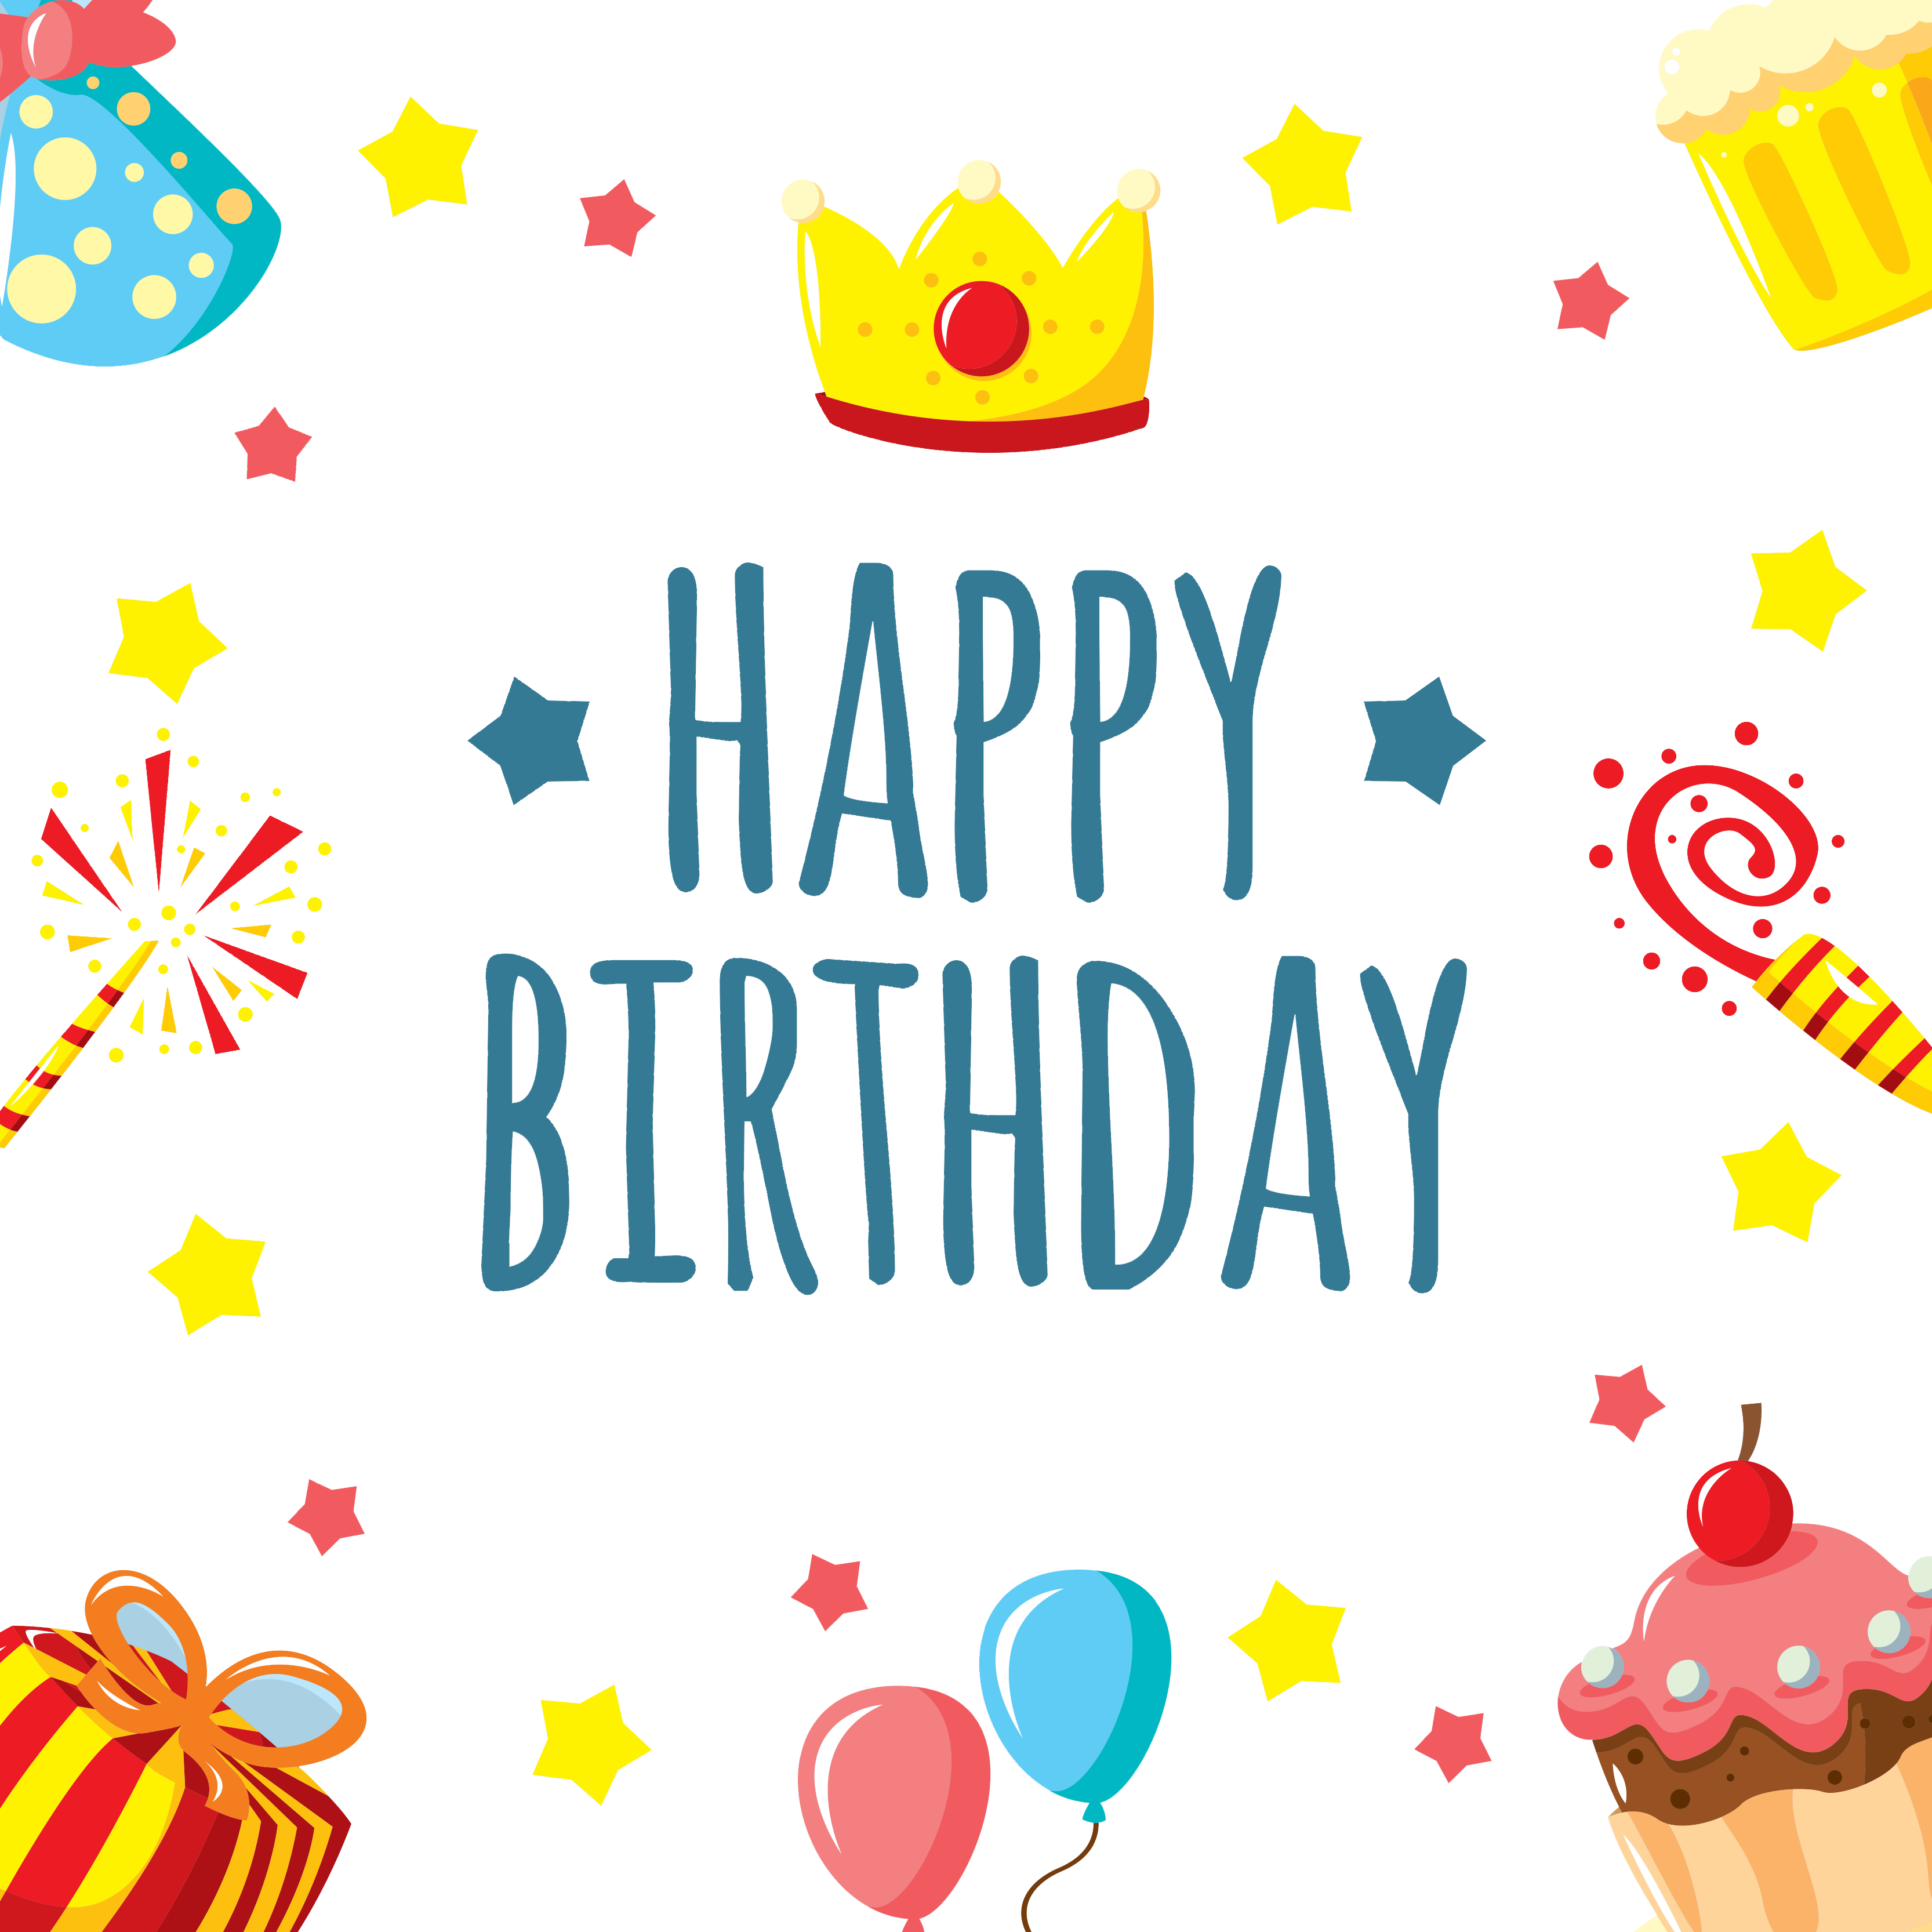 svg royalty free Brother at getdrawings com. Happy birthday sister clipart